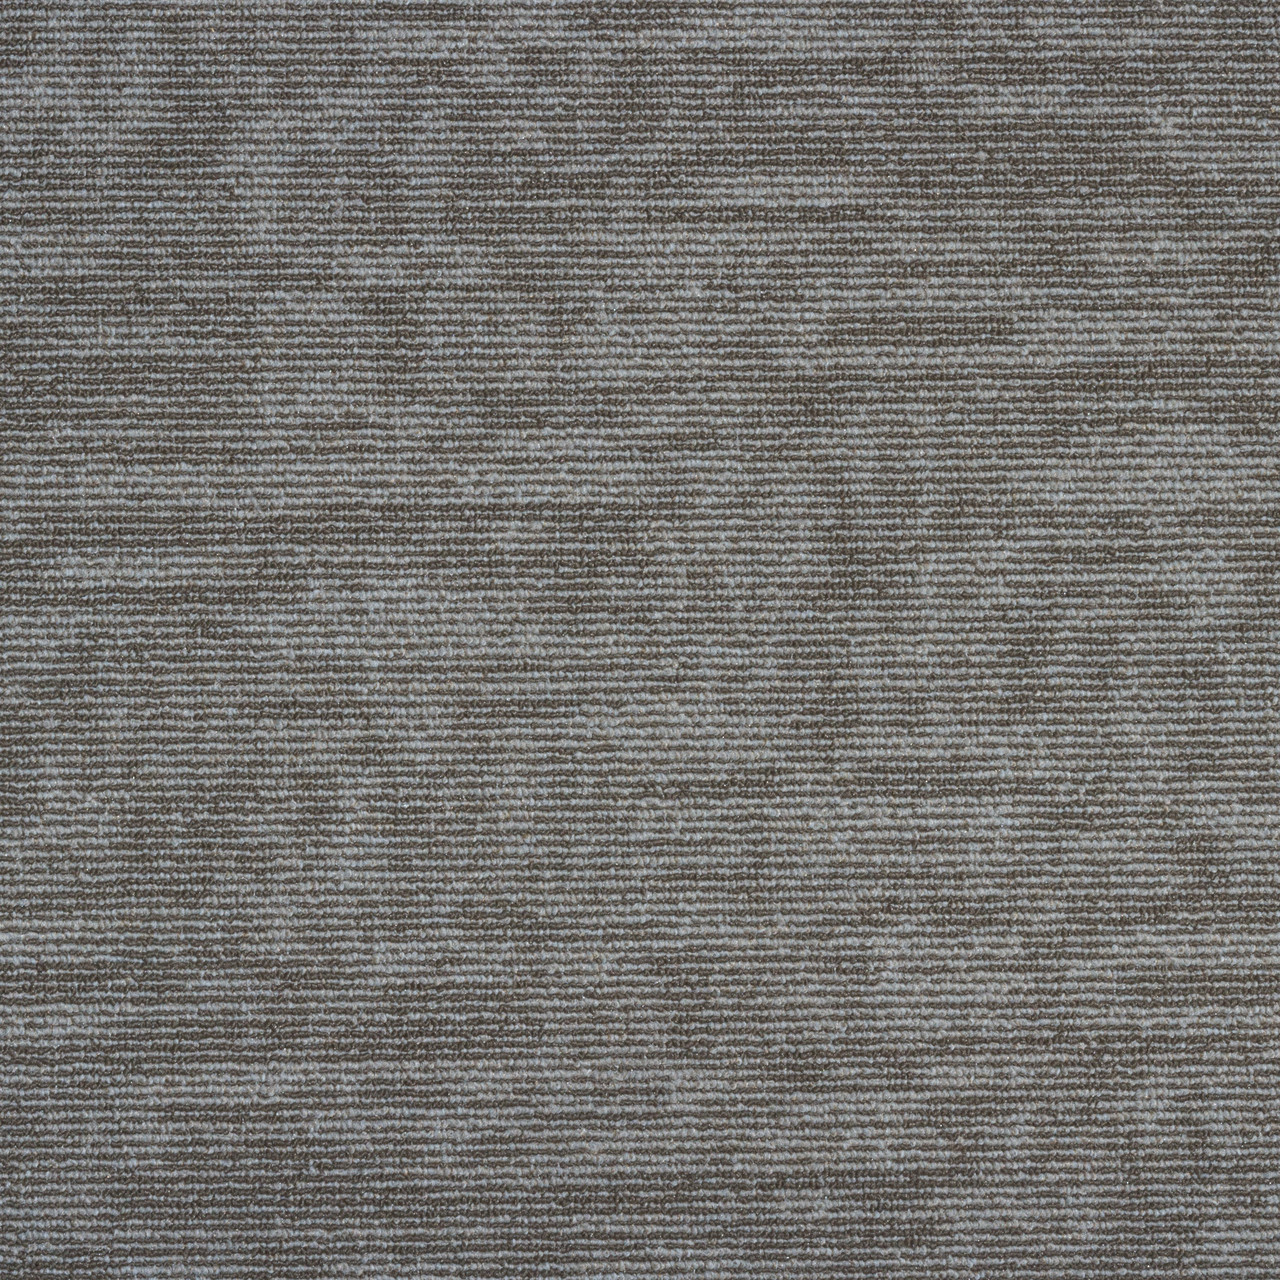 Beige Solution Dyed Nylon Carpet Tile